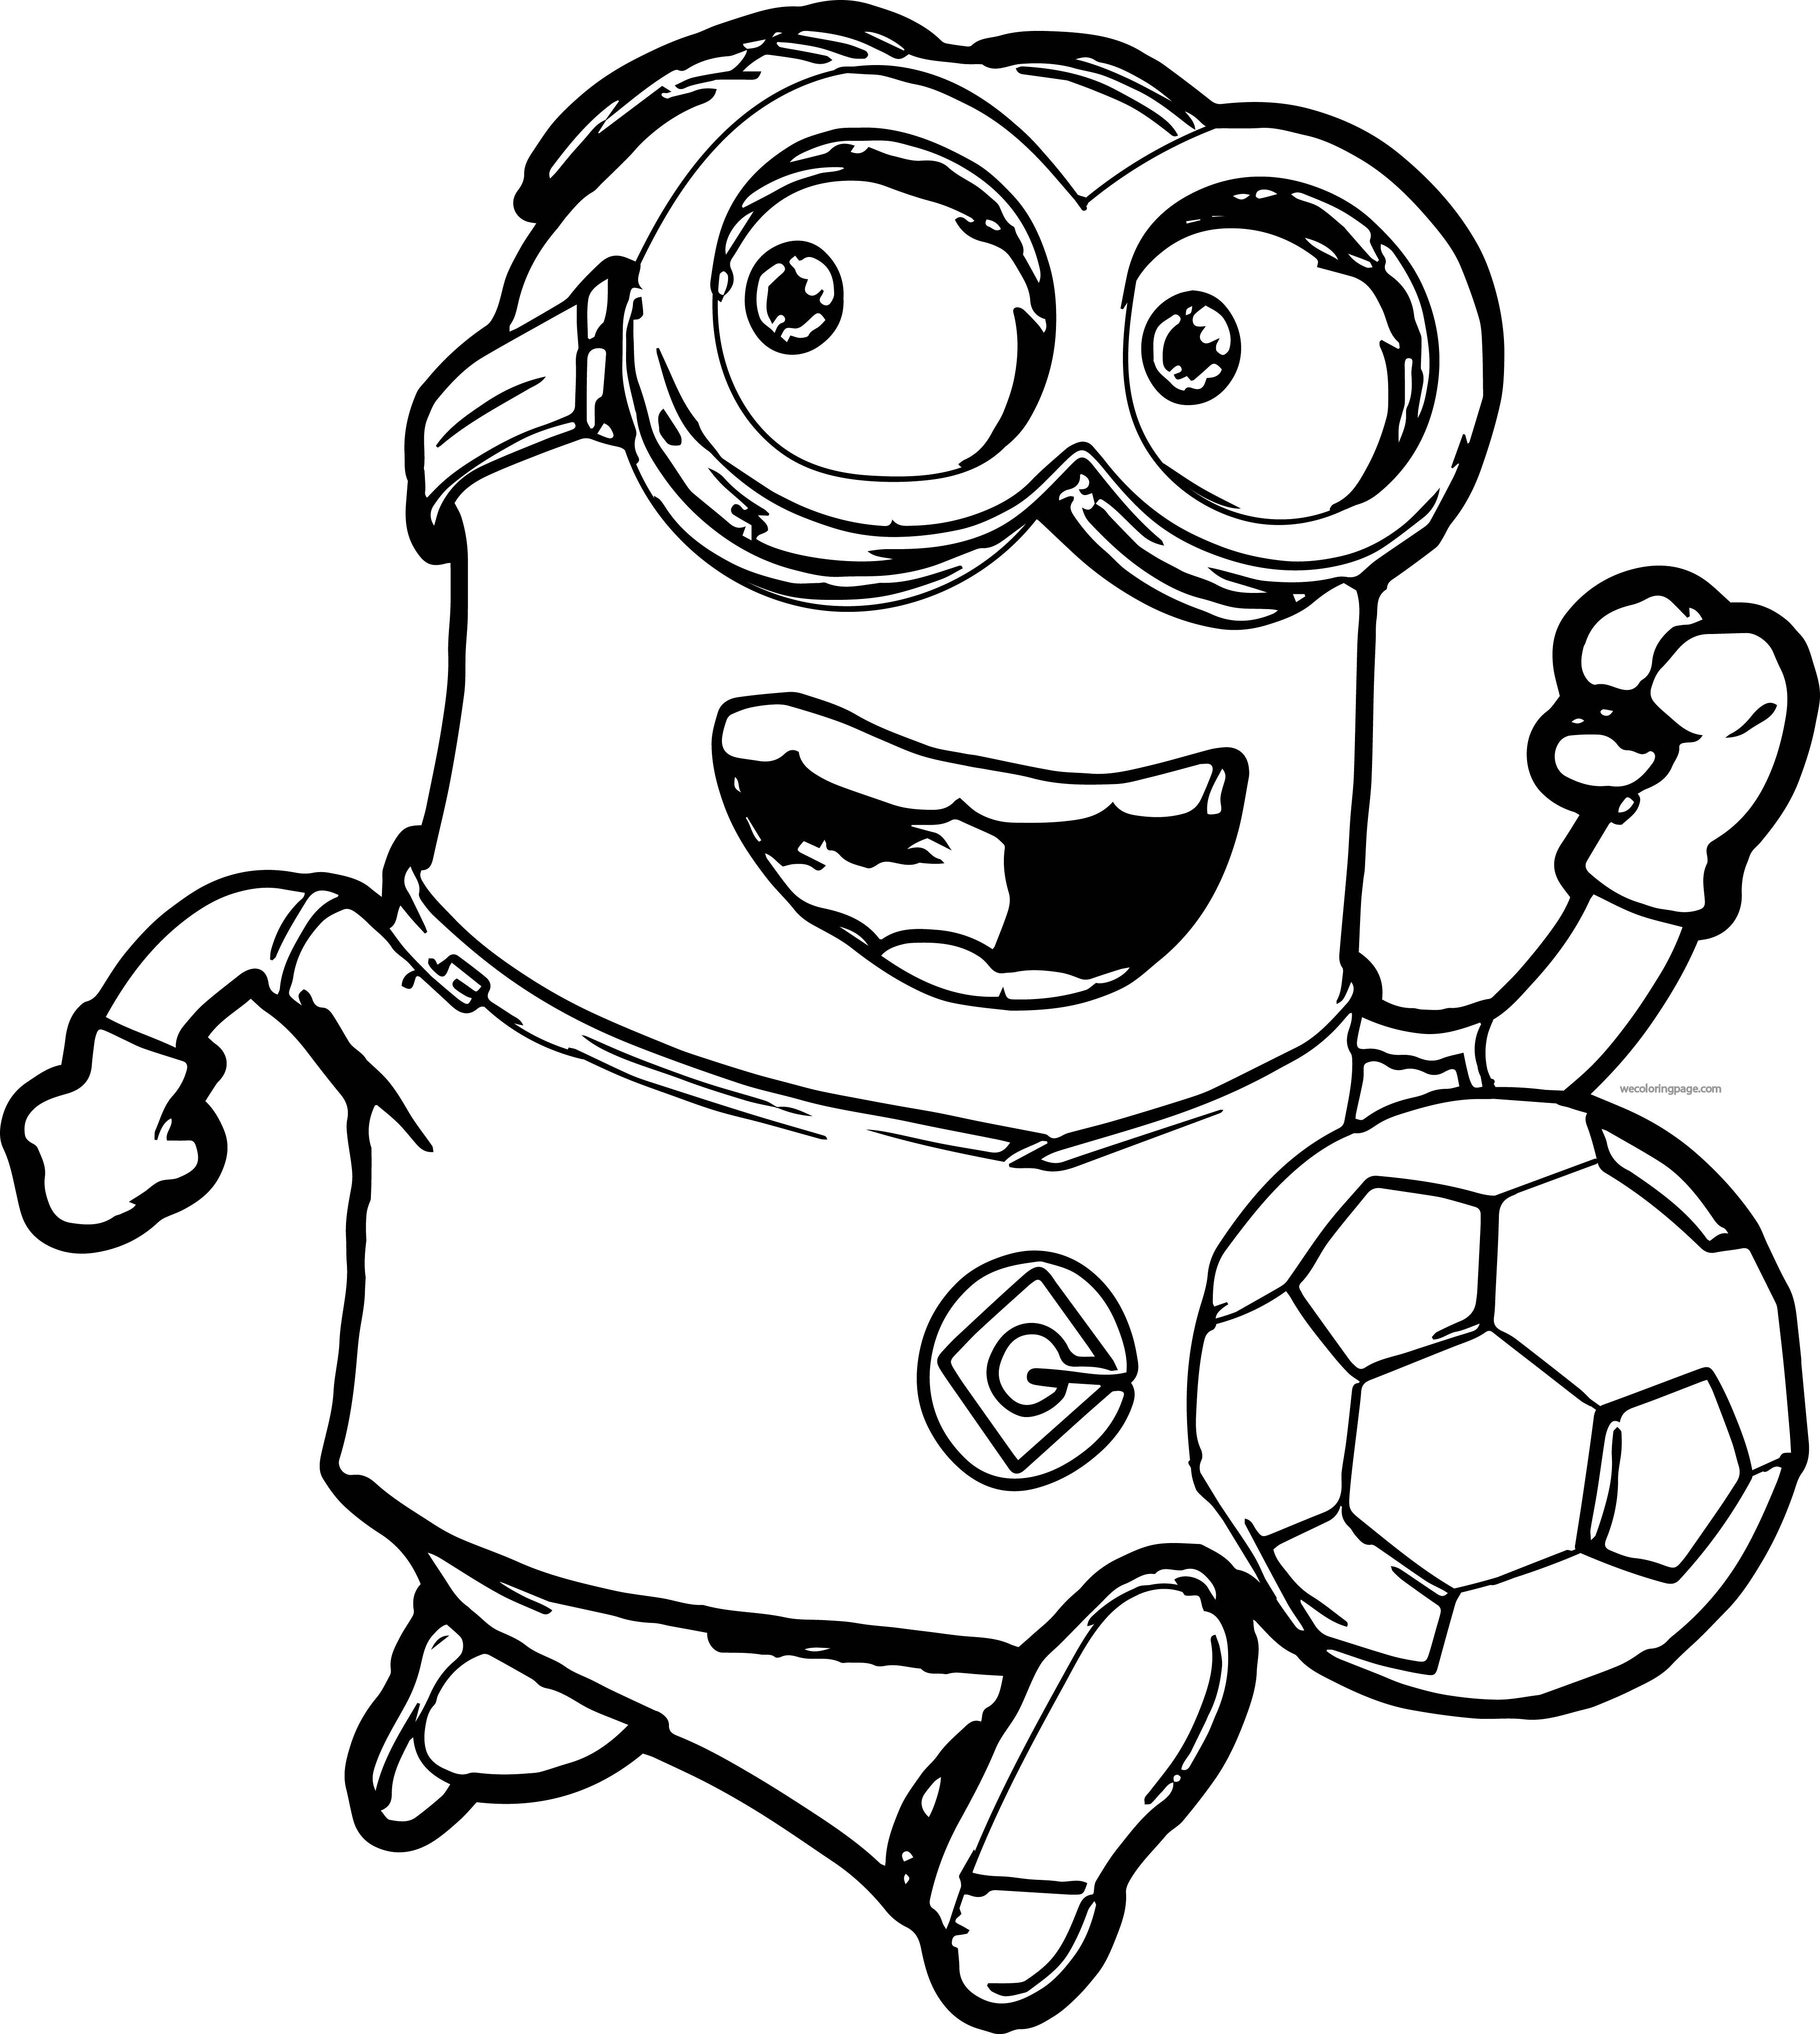 soccer colouring pages soccer coloring pages for childrens printable for free colouring soccer pages